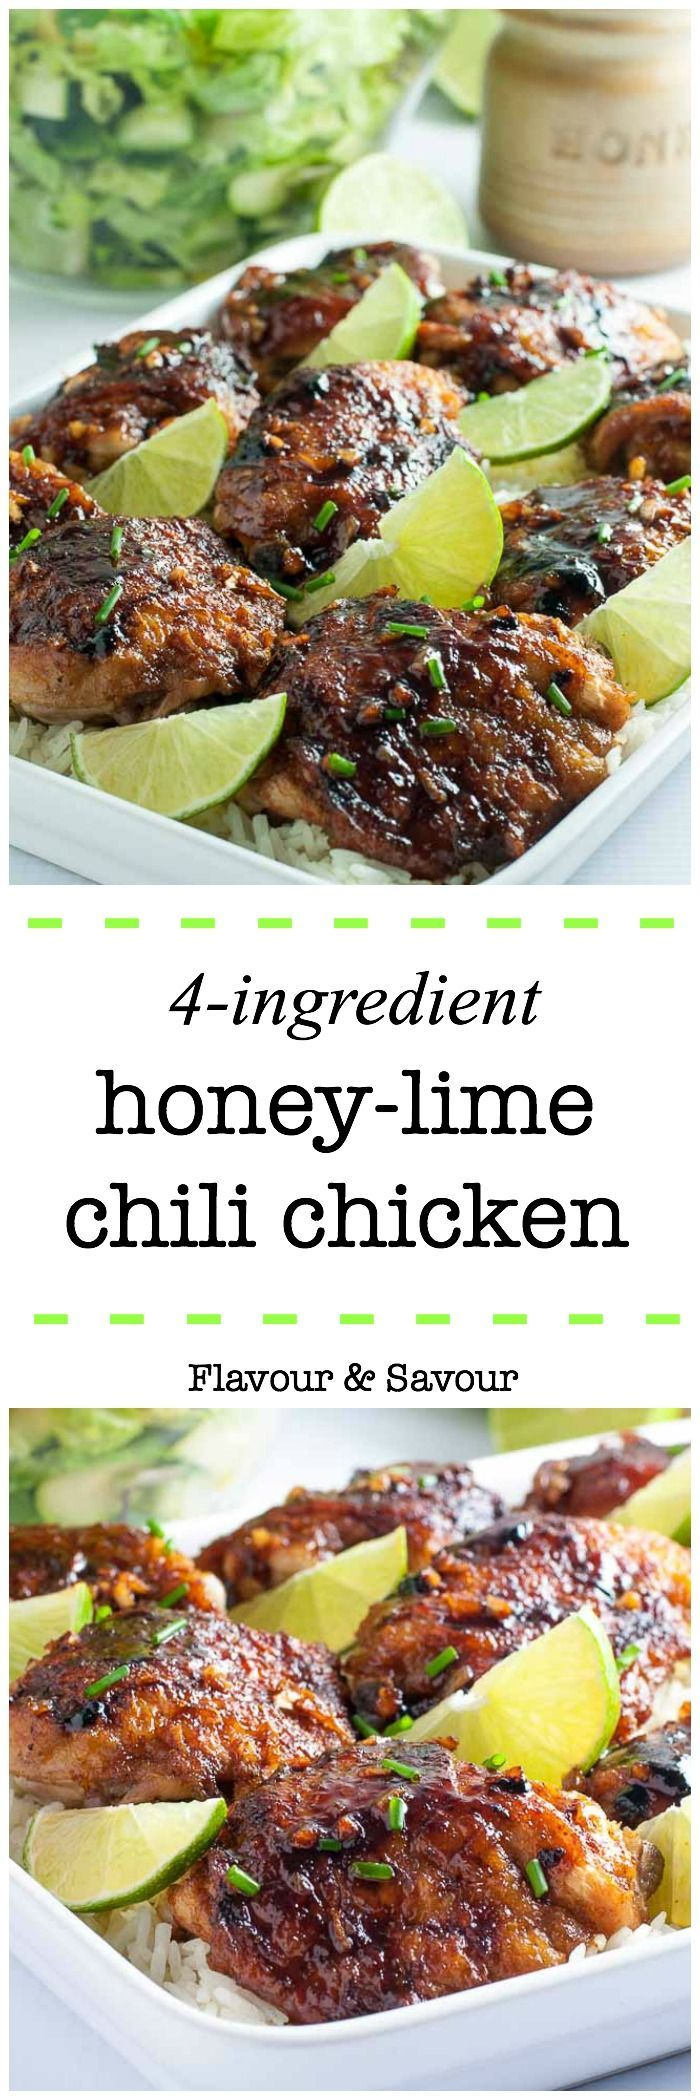 This recipe for 4-Ingredient Honey Lime Chili Chicken Thighs makes an easy weeknight meal. It's succulently sweet and spicy!  An easy one-pot dish. Simple instructions for how to sear chicken without having it stick to the pan! |www.flavourandsavour.com via @enessman